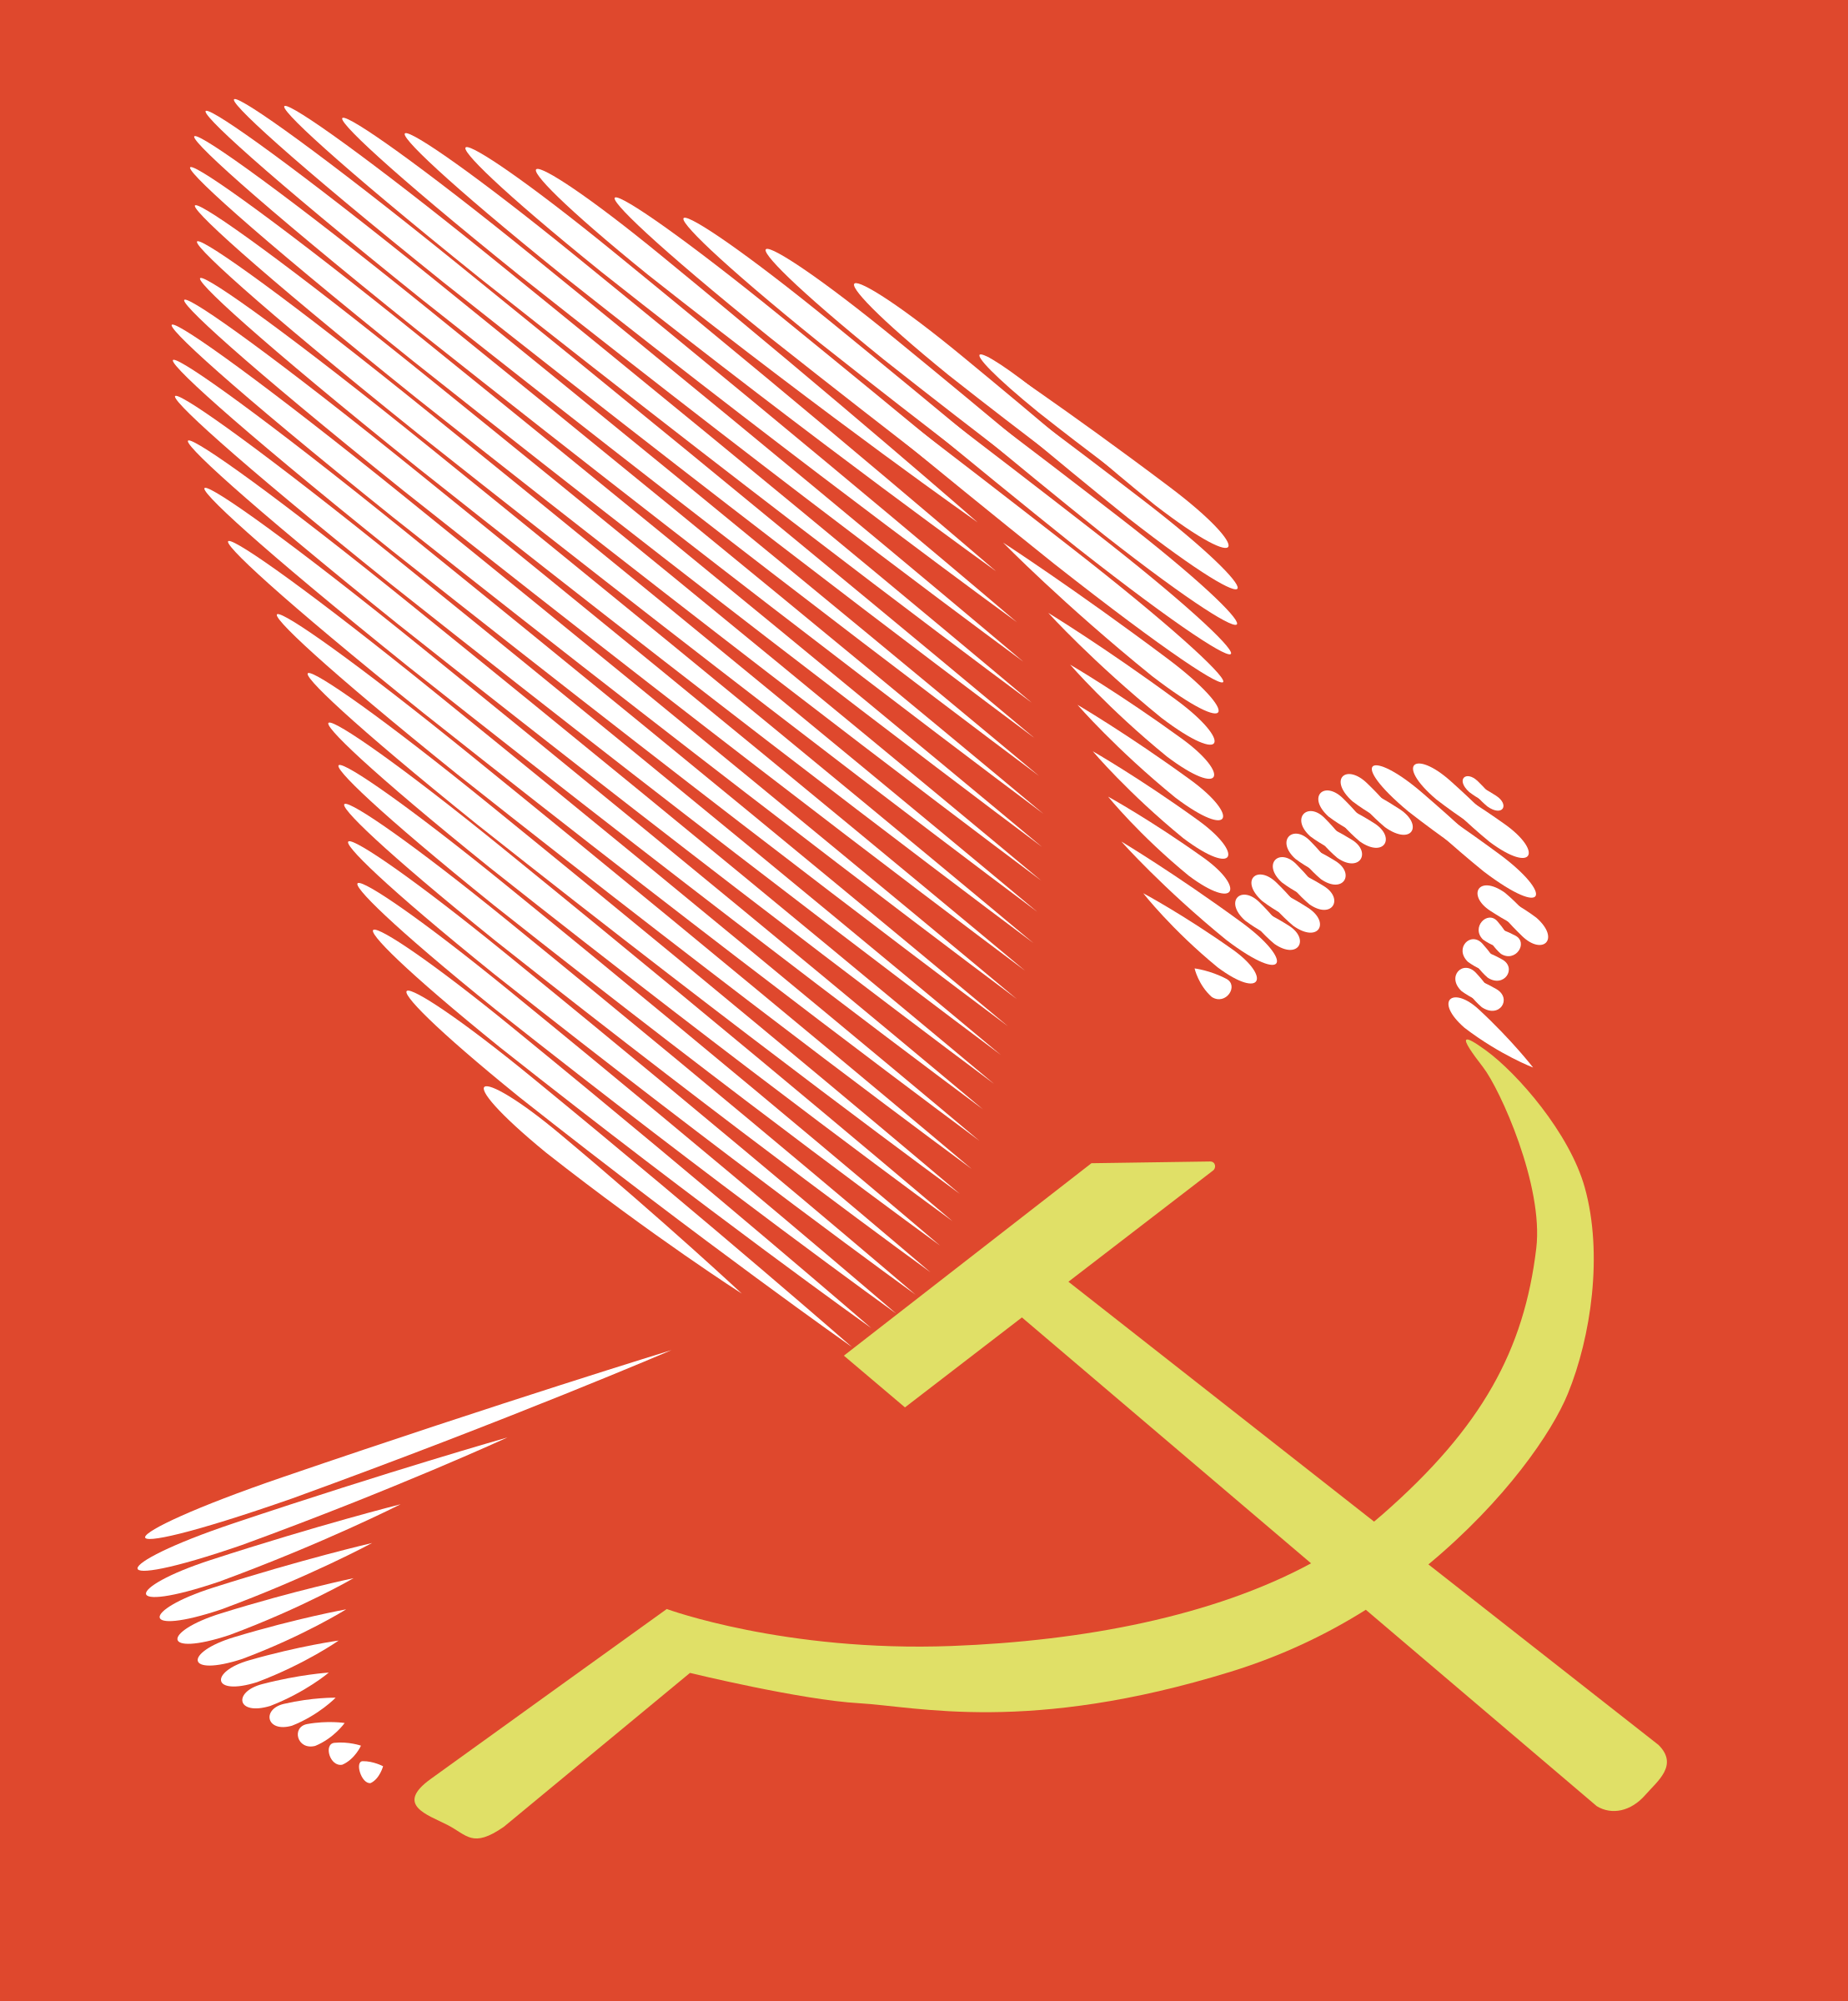 Peace and Socialism by worker